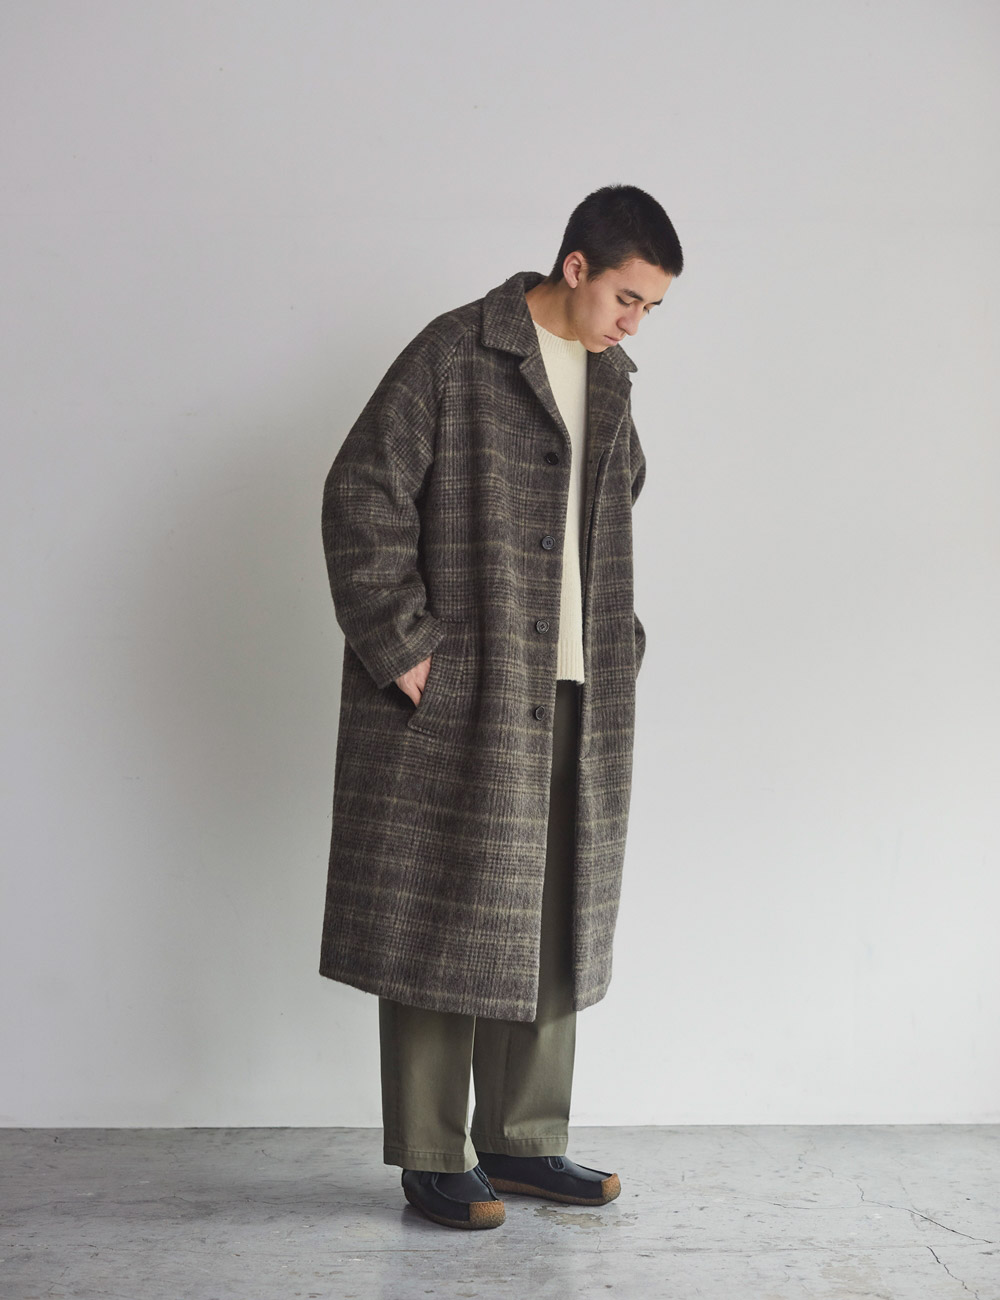 MARKAWARE 2020 FALL/WINTER LOOKBOOK